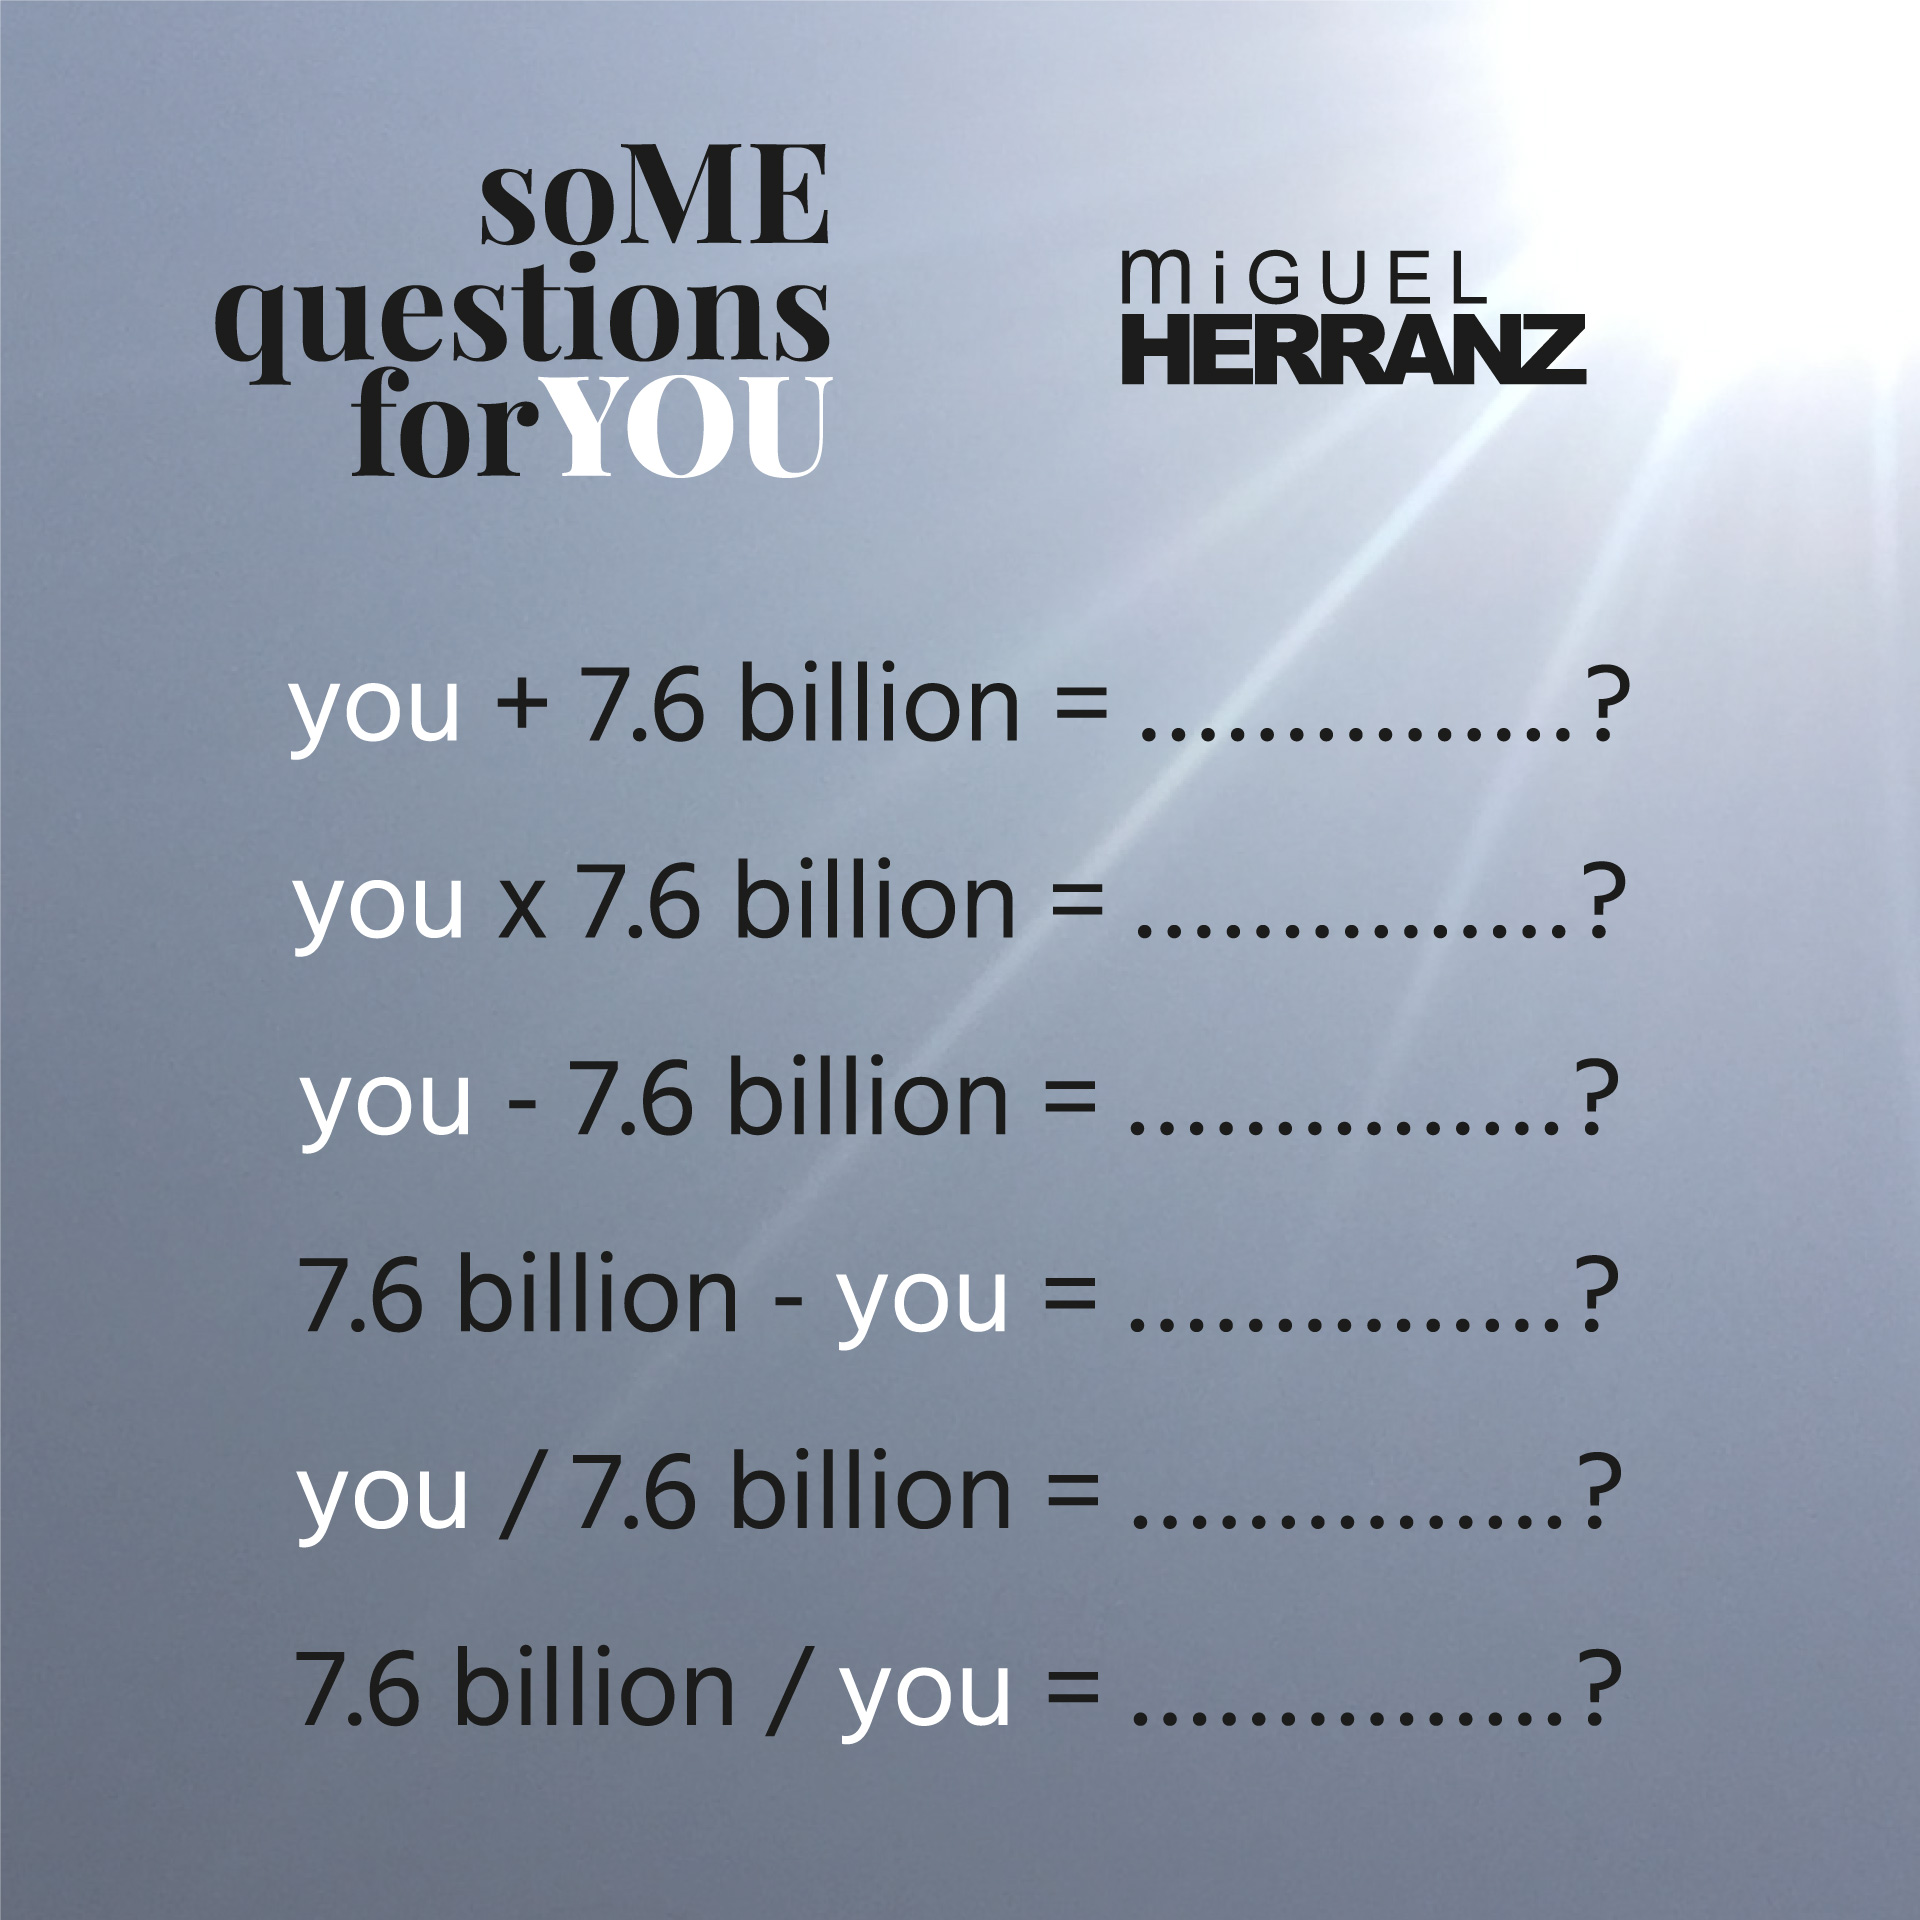 7.6 billion | soMe questions for YOU